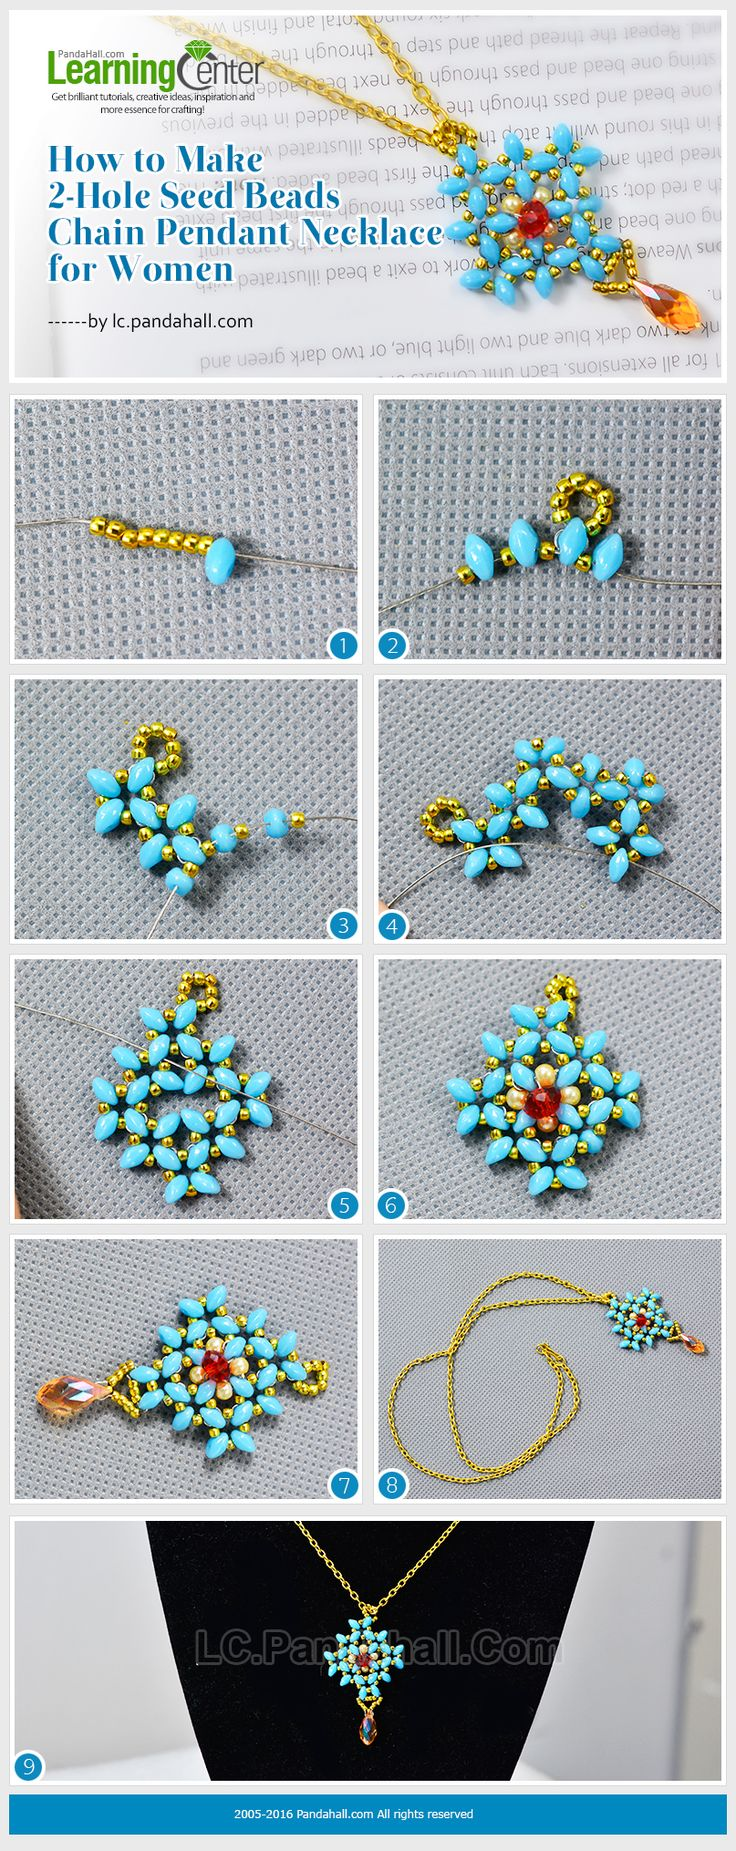 Tutorial on How to Make 2-Hole Seed Beads Chain Pendant Necklace for Women from LC.Pandahall.com